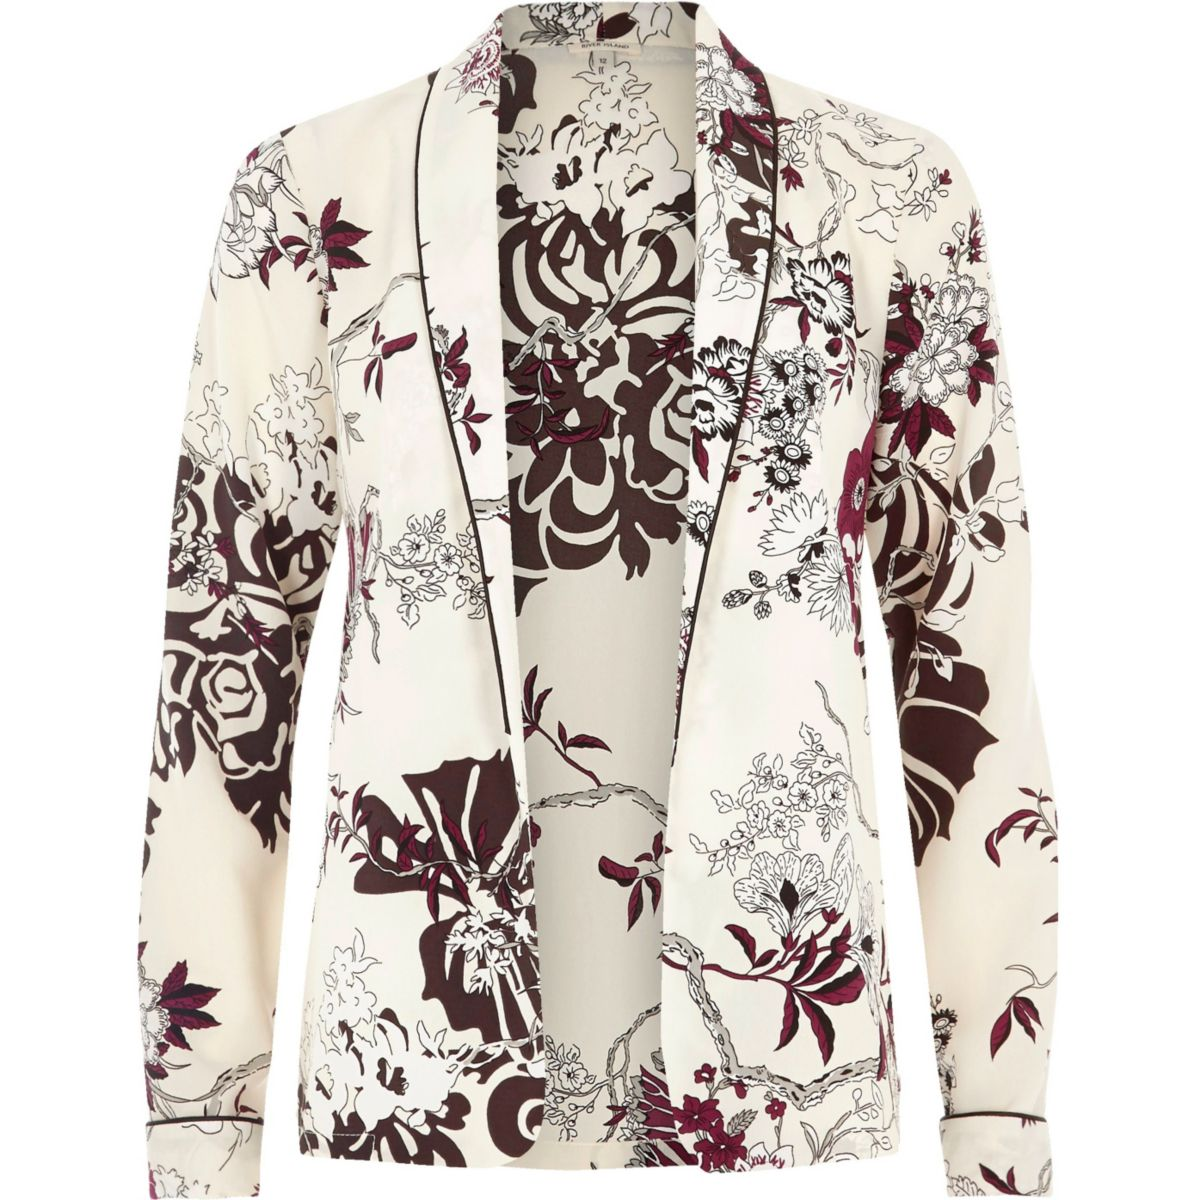 Cream floral print shirt jacket